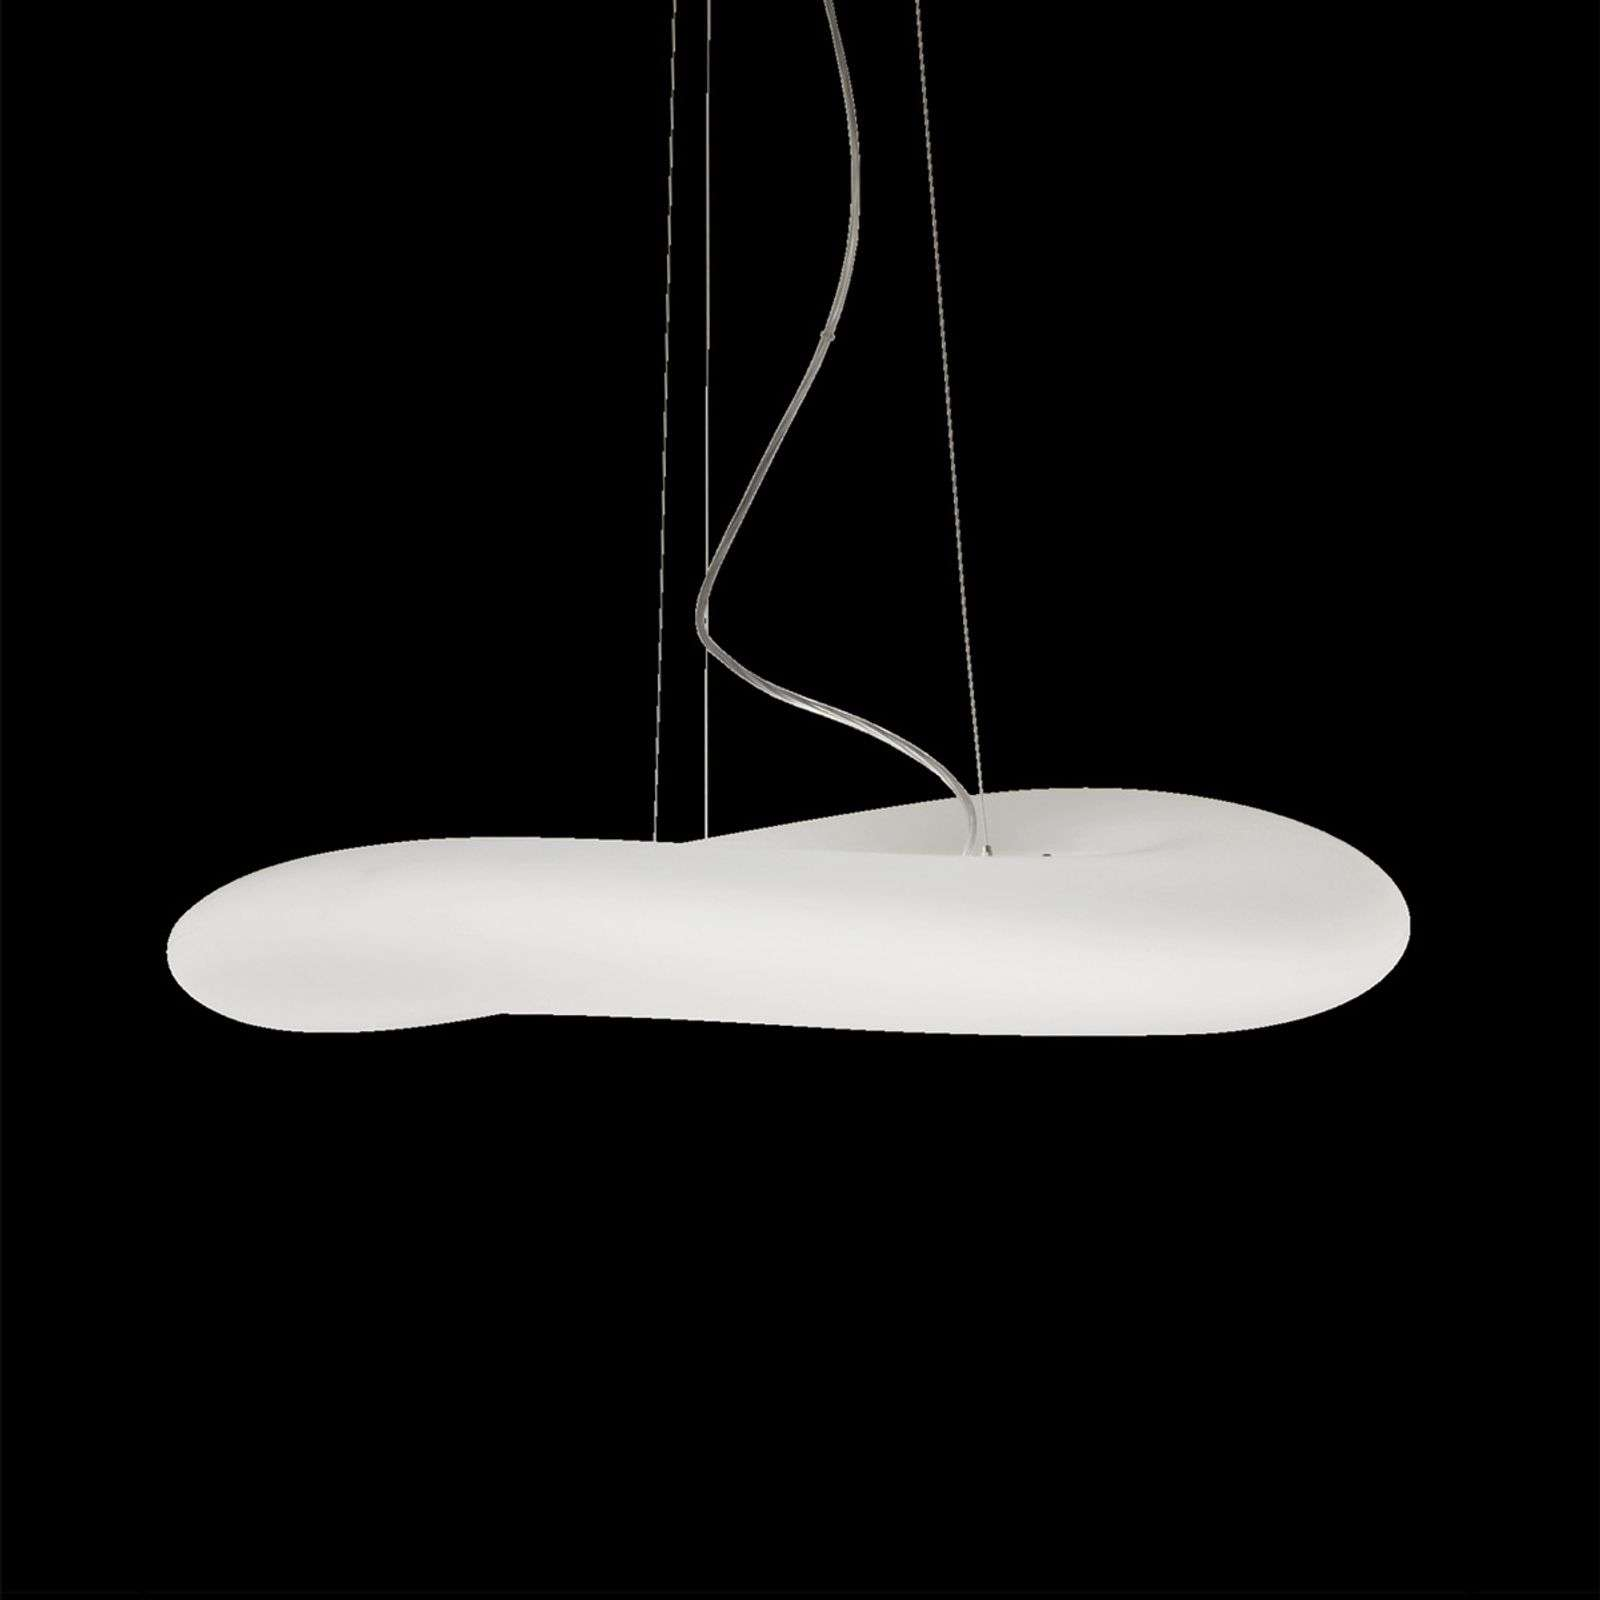 Suspension LED Mr. Magoo 115 cm